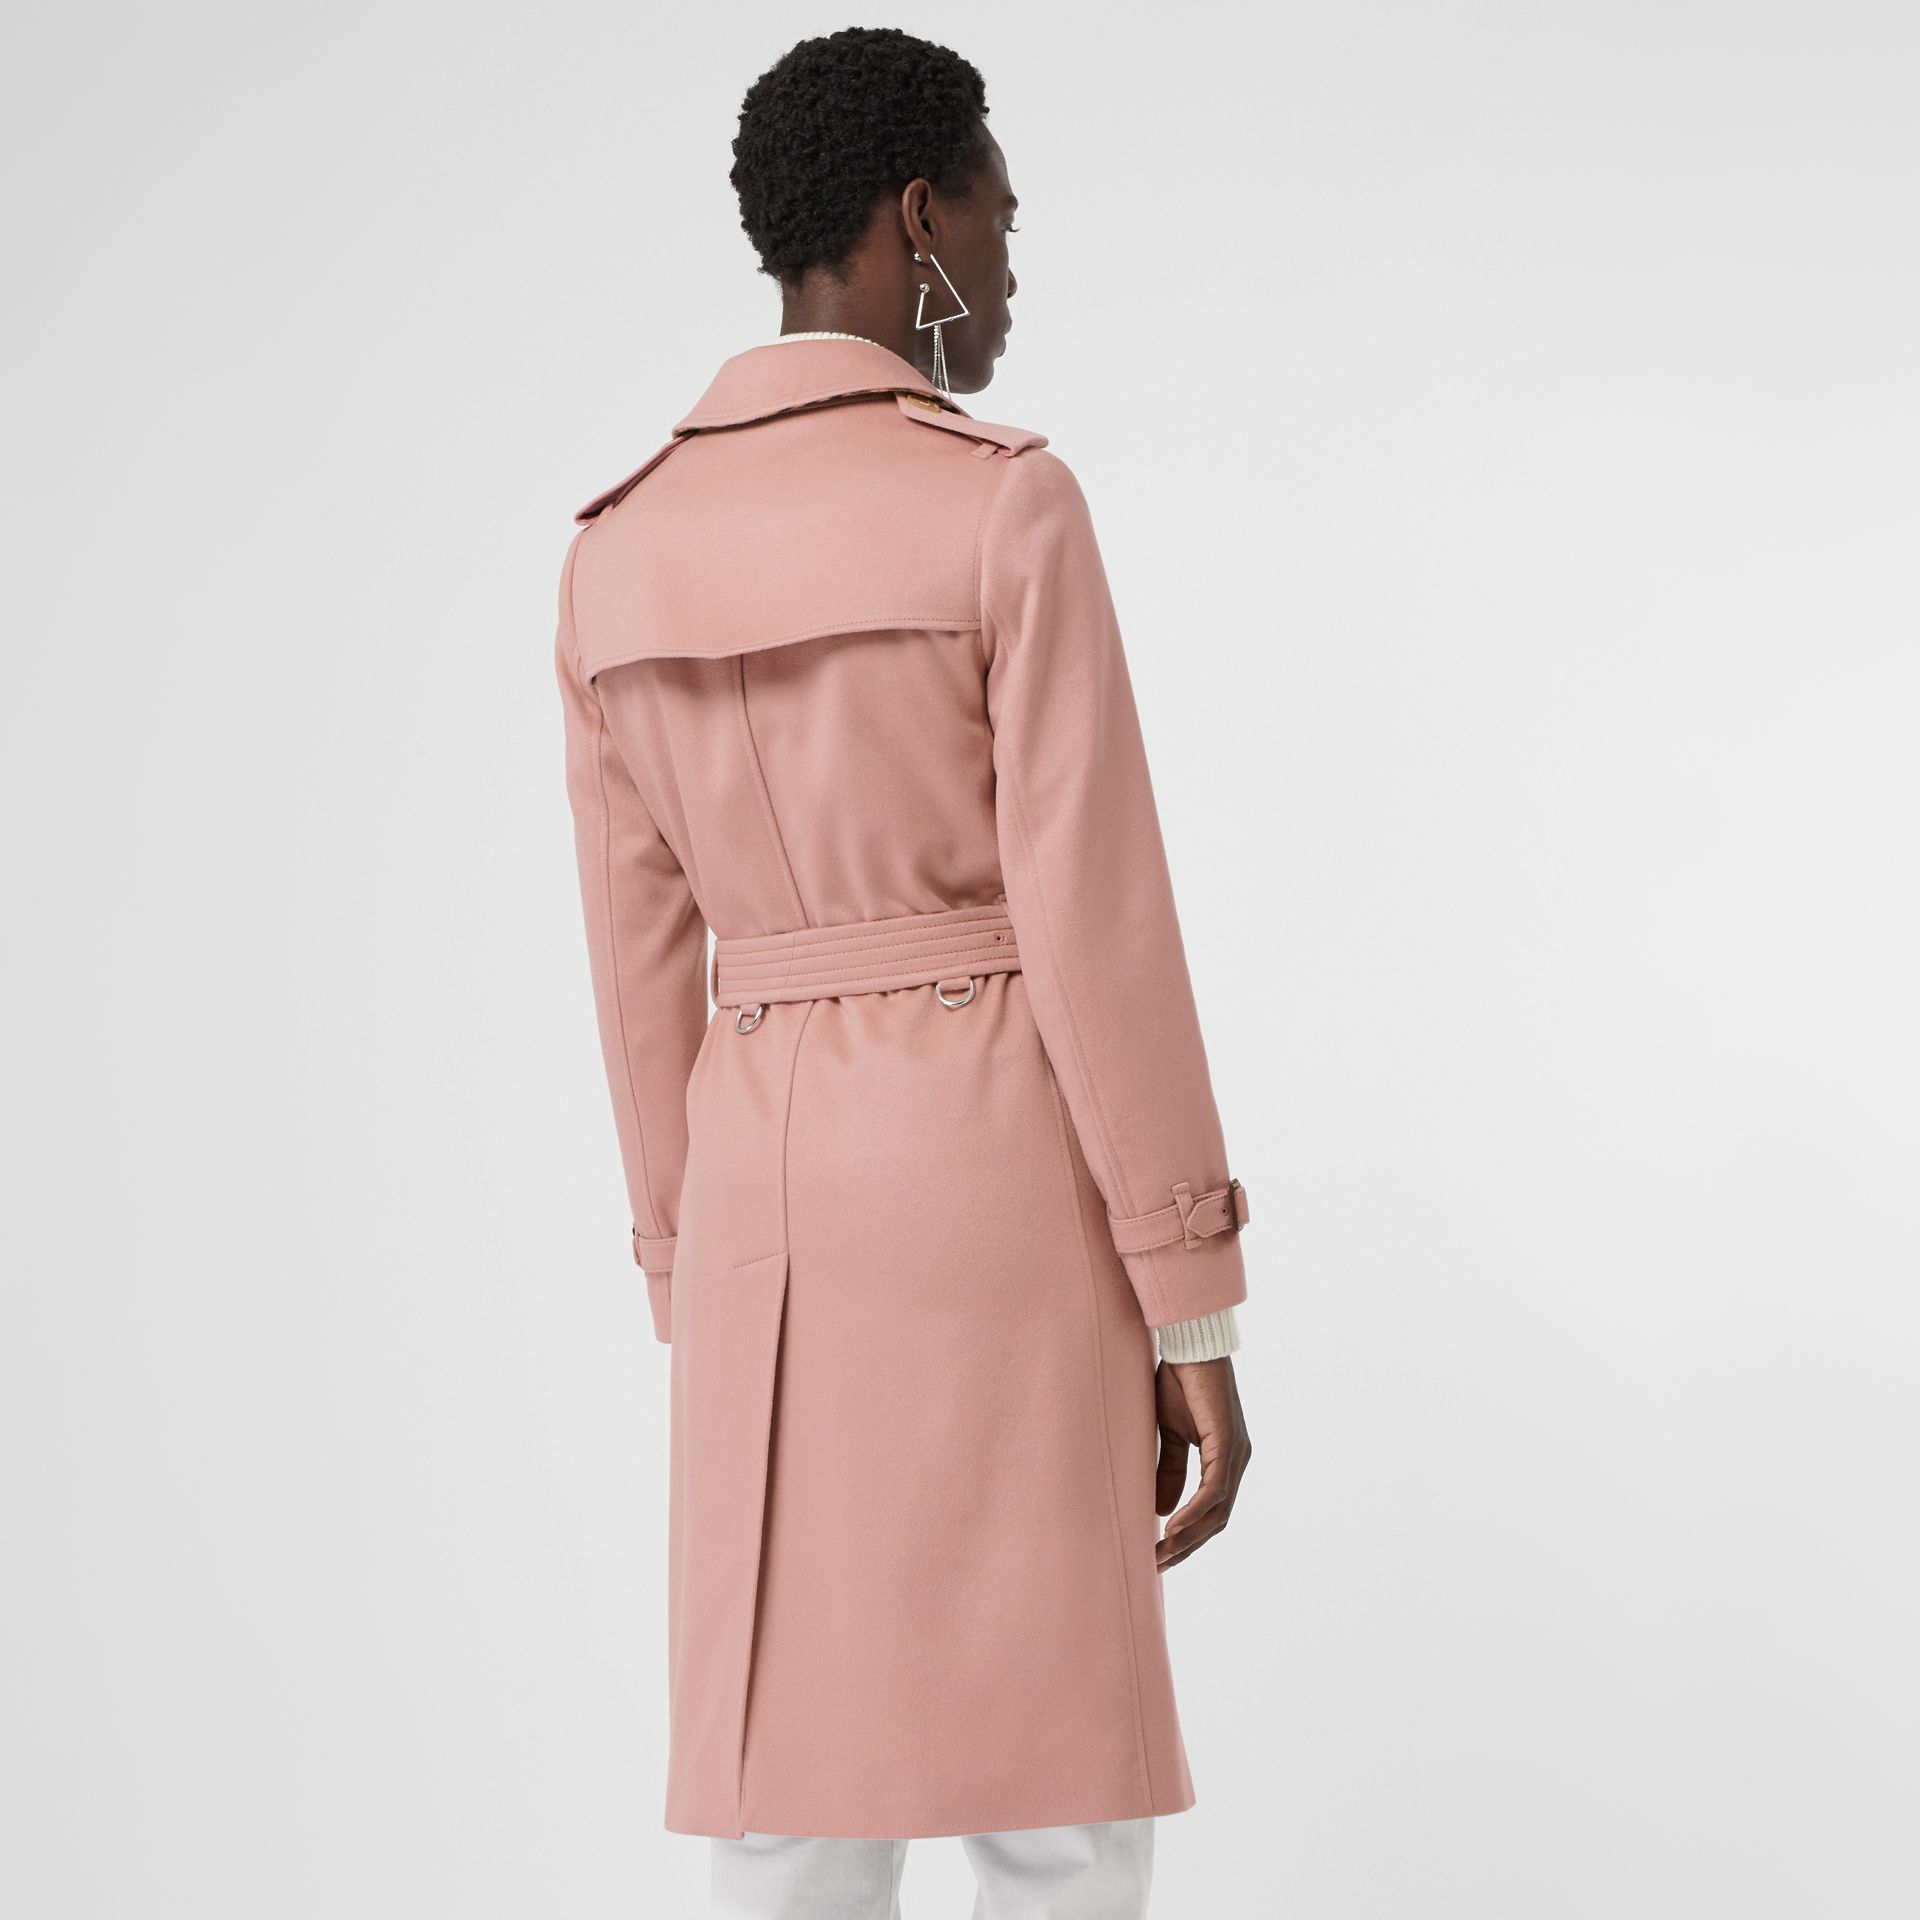 Cashmere Trench Coat in Chalk Pink - Women | Burberry Canada - gallery image 2